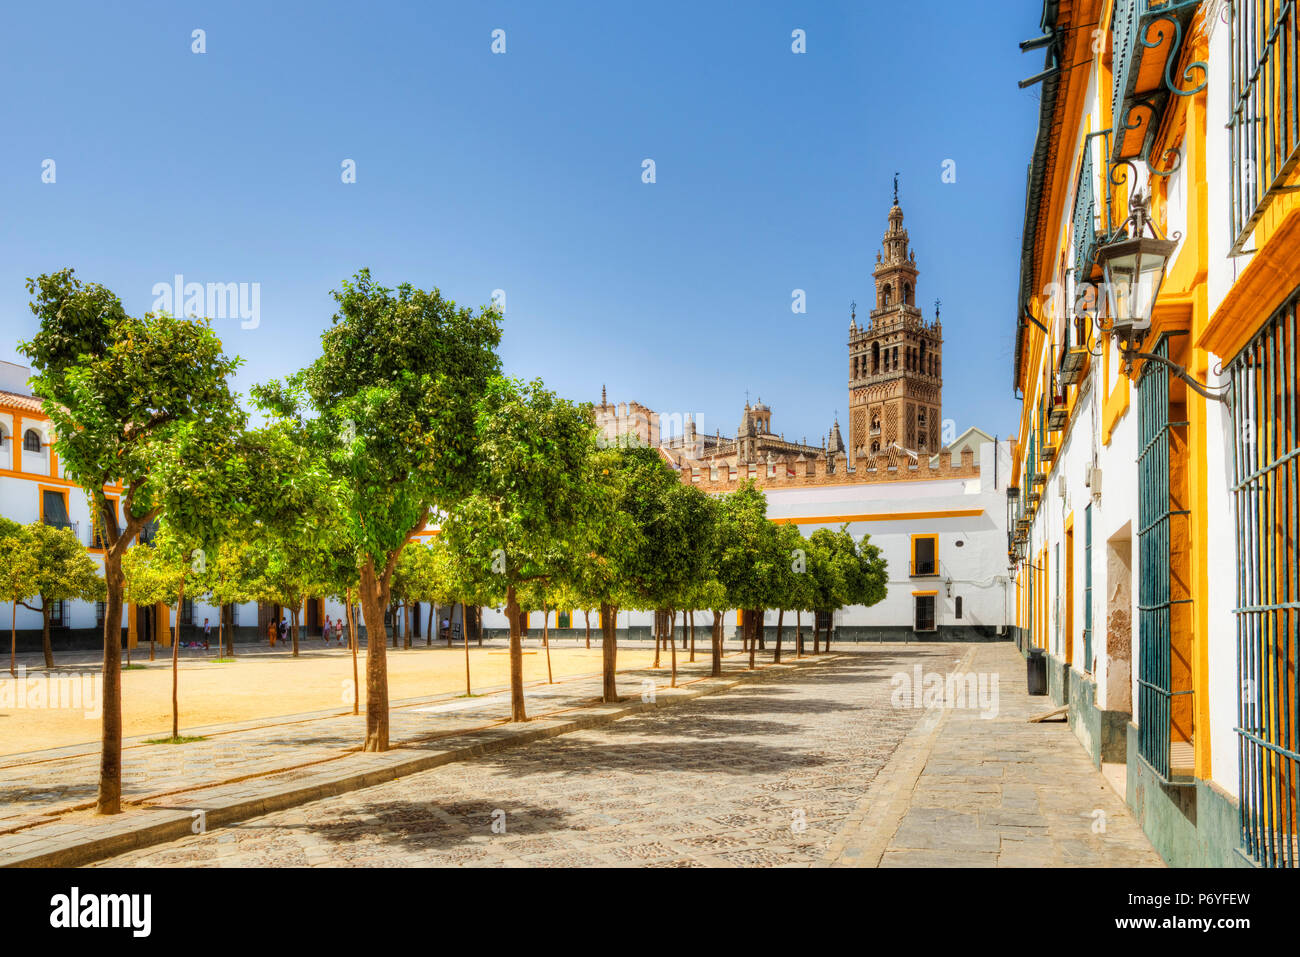 Court of Banderas with the Giralda tower of the Cathedral, UNESCO World Heritage Site, Sevilla, Andalusia, Spain - Stock Image